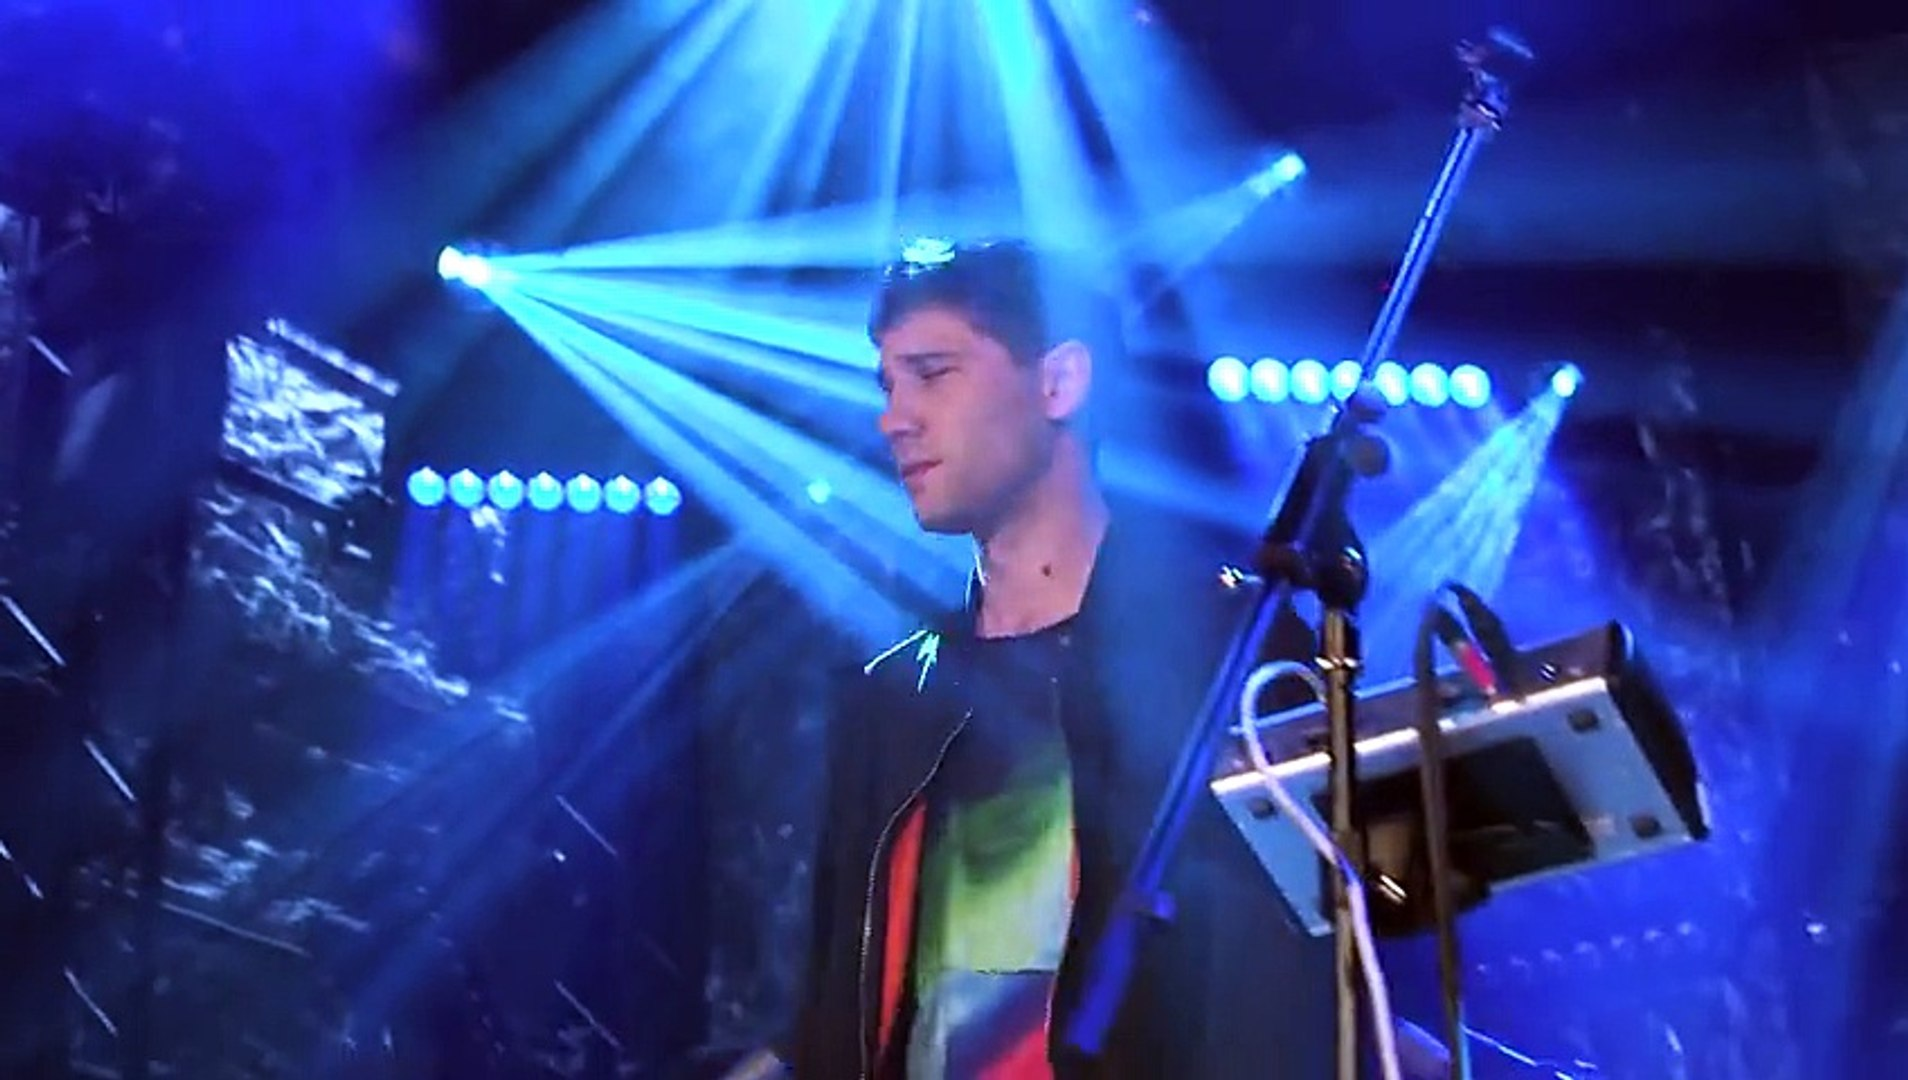 Sam Sure - Signs Of Life (Live) - Vevo UK @ The Great Escape 2015